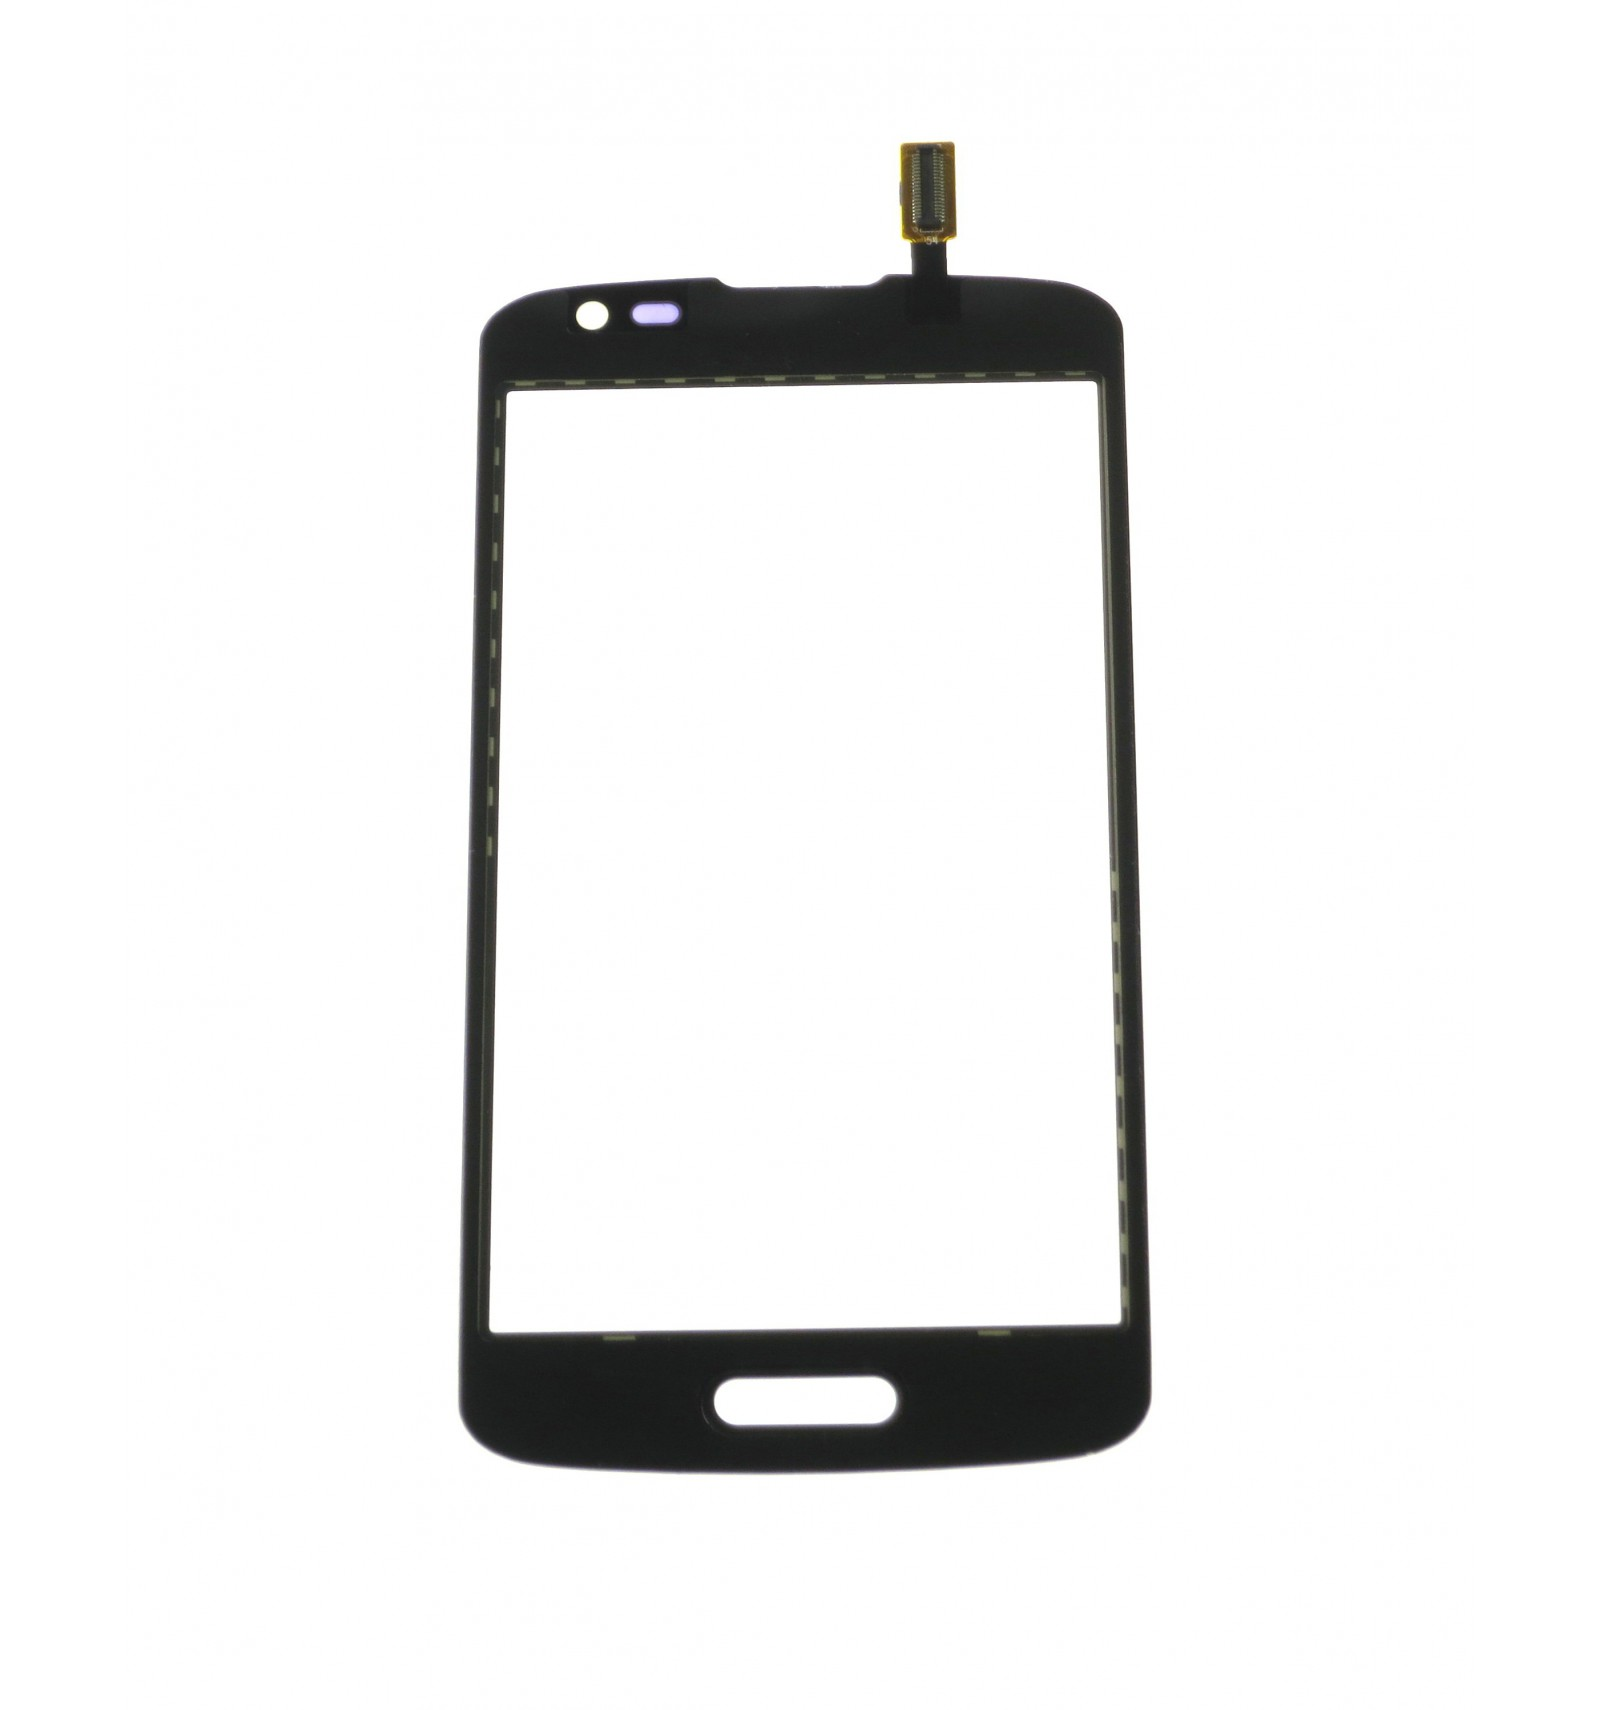 Touch screen white replacement for LG D315 F70